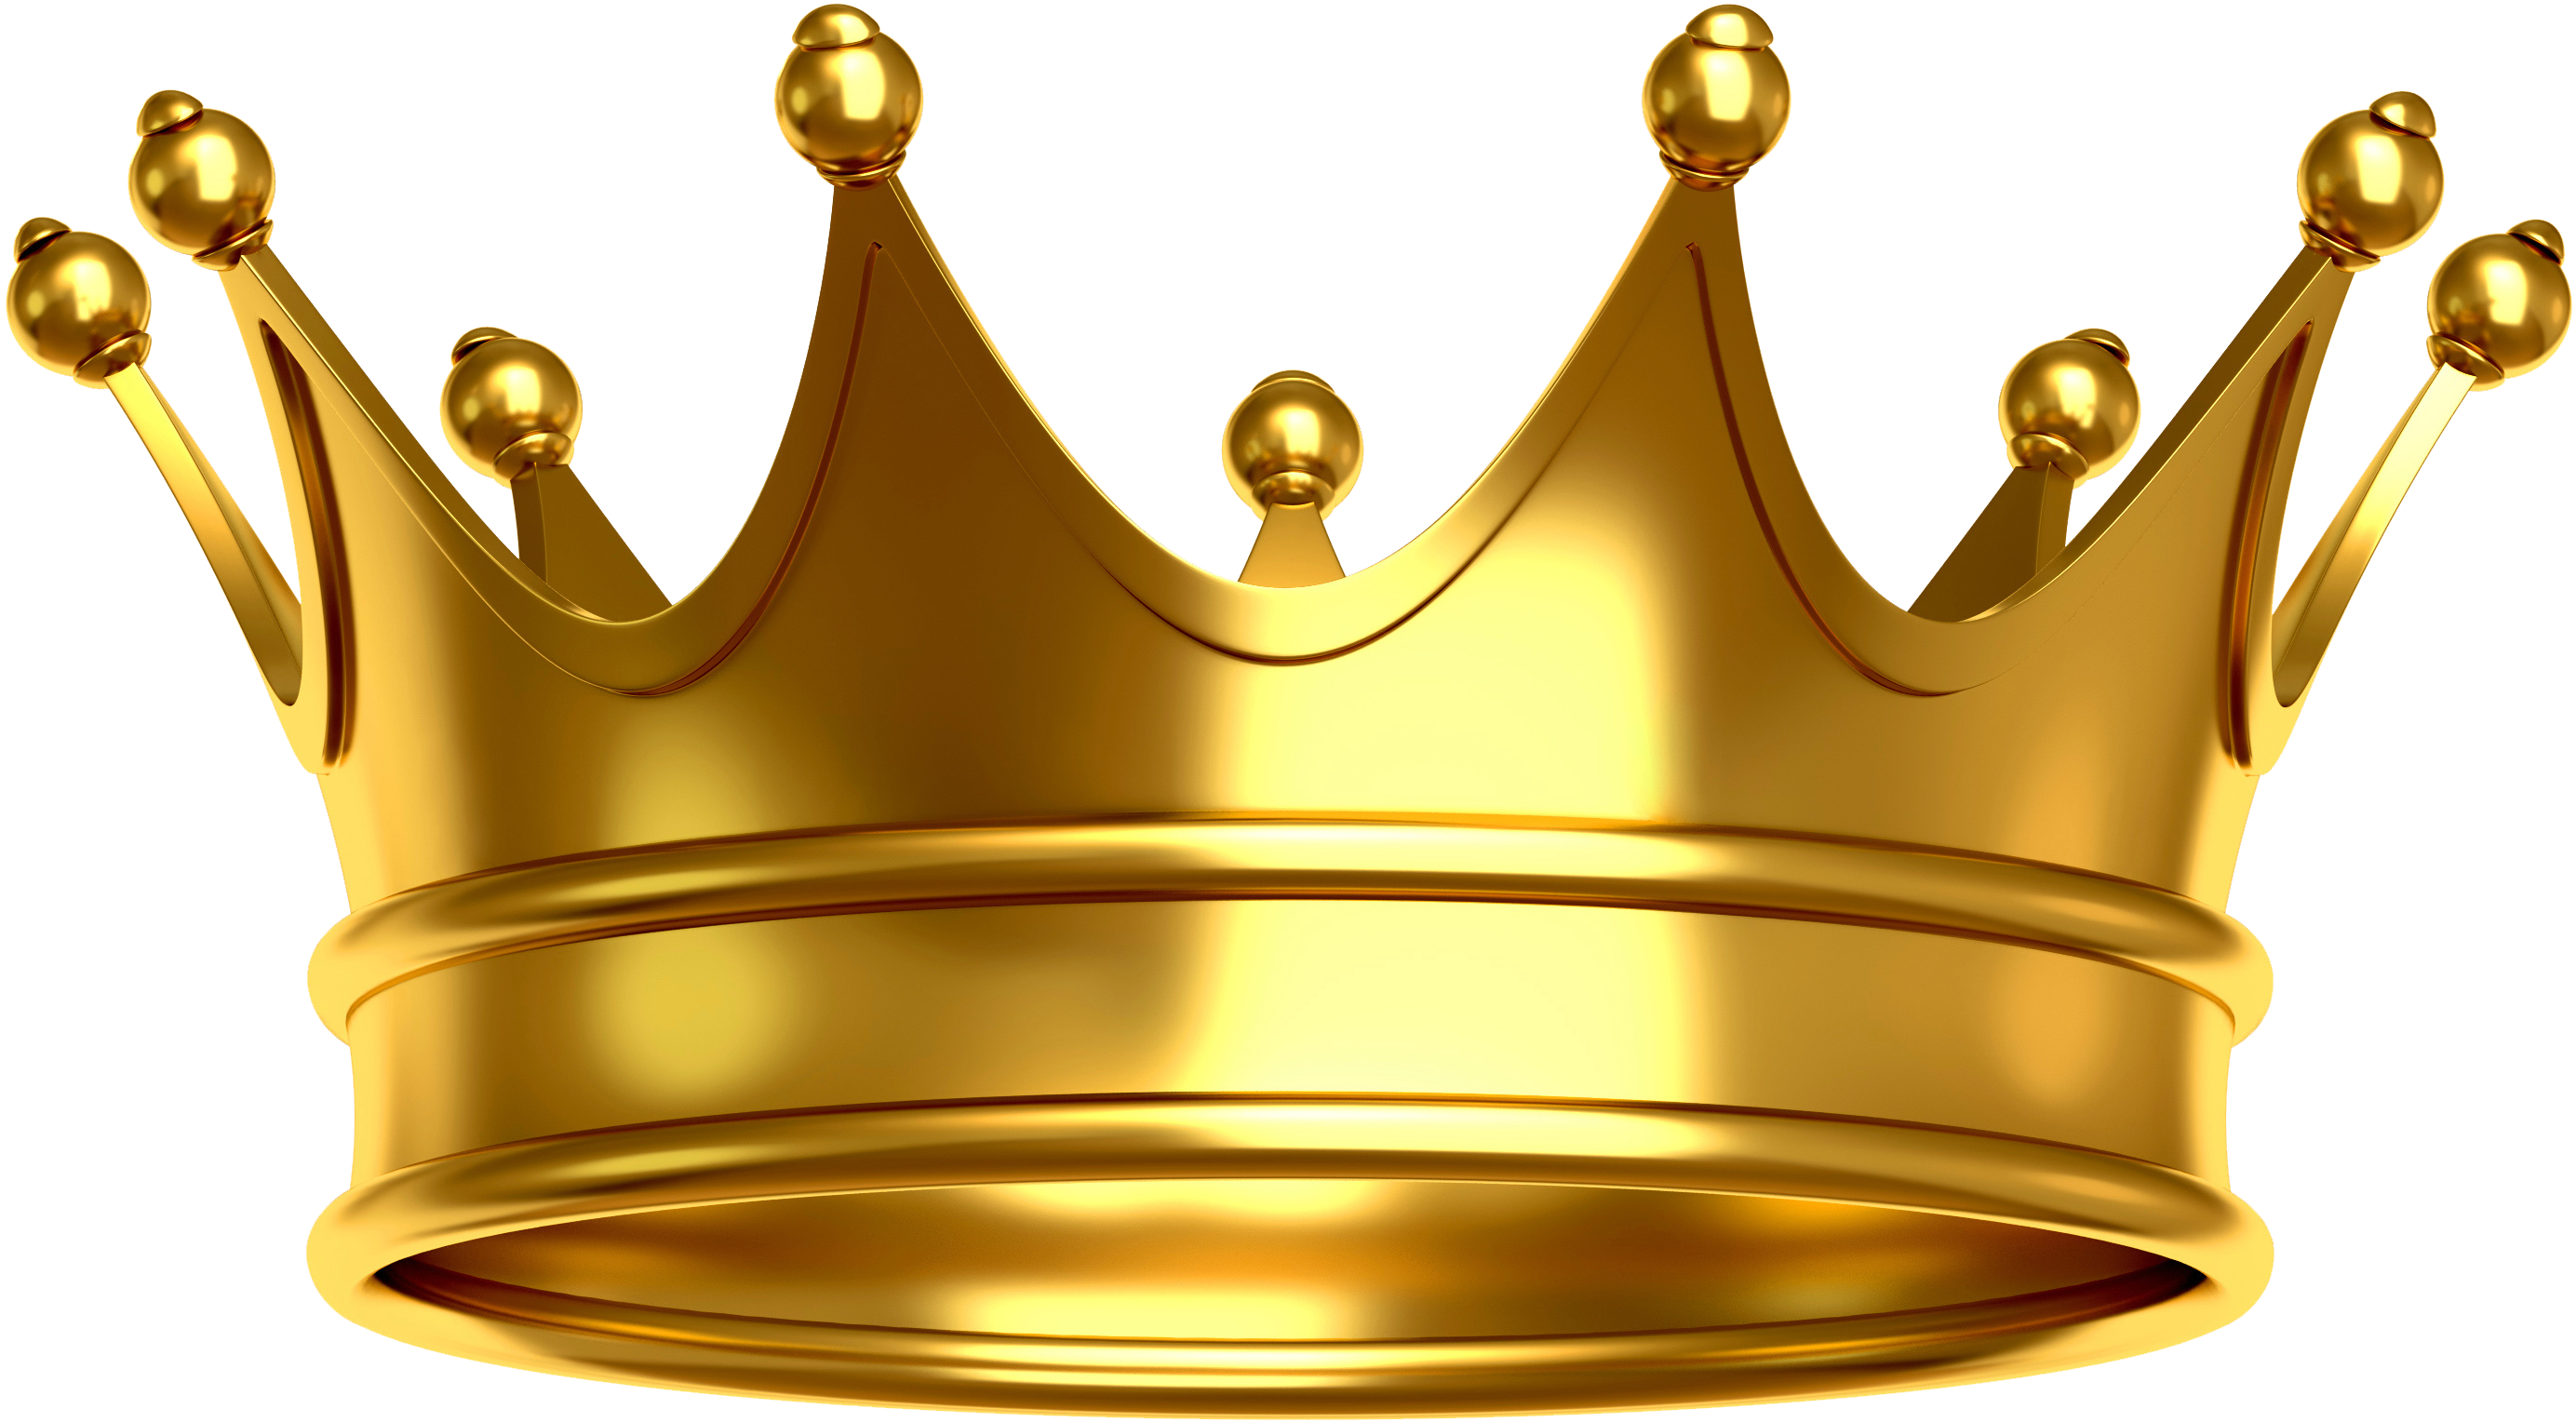 banner King transparent. Png hd images pluspng